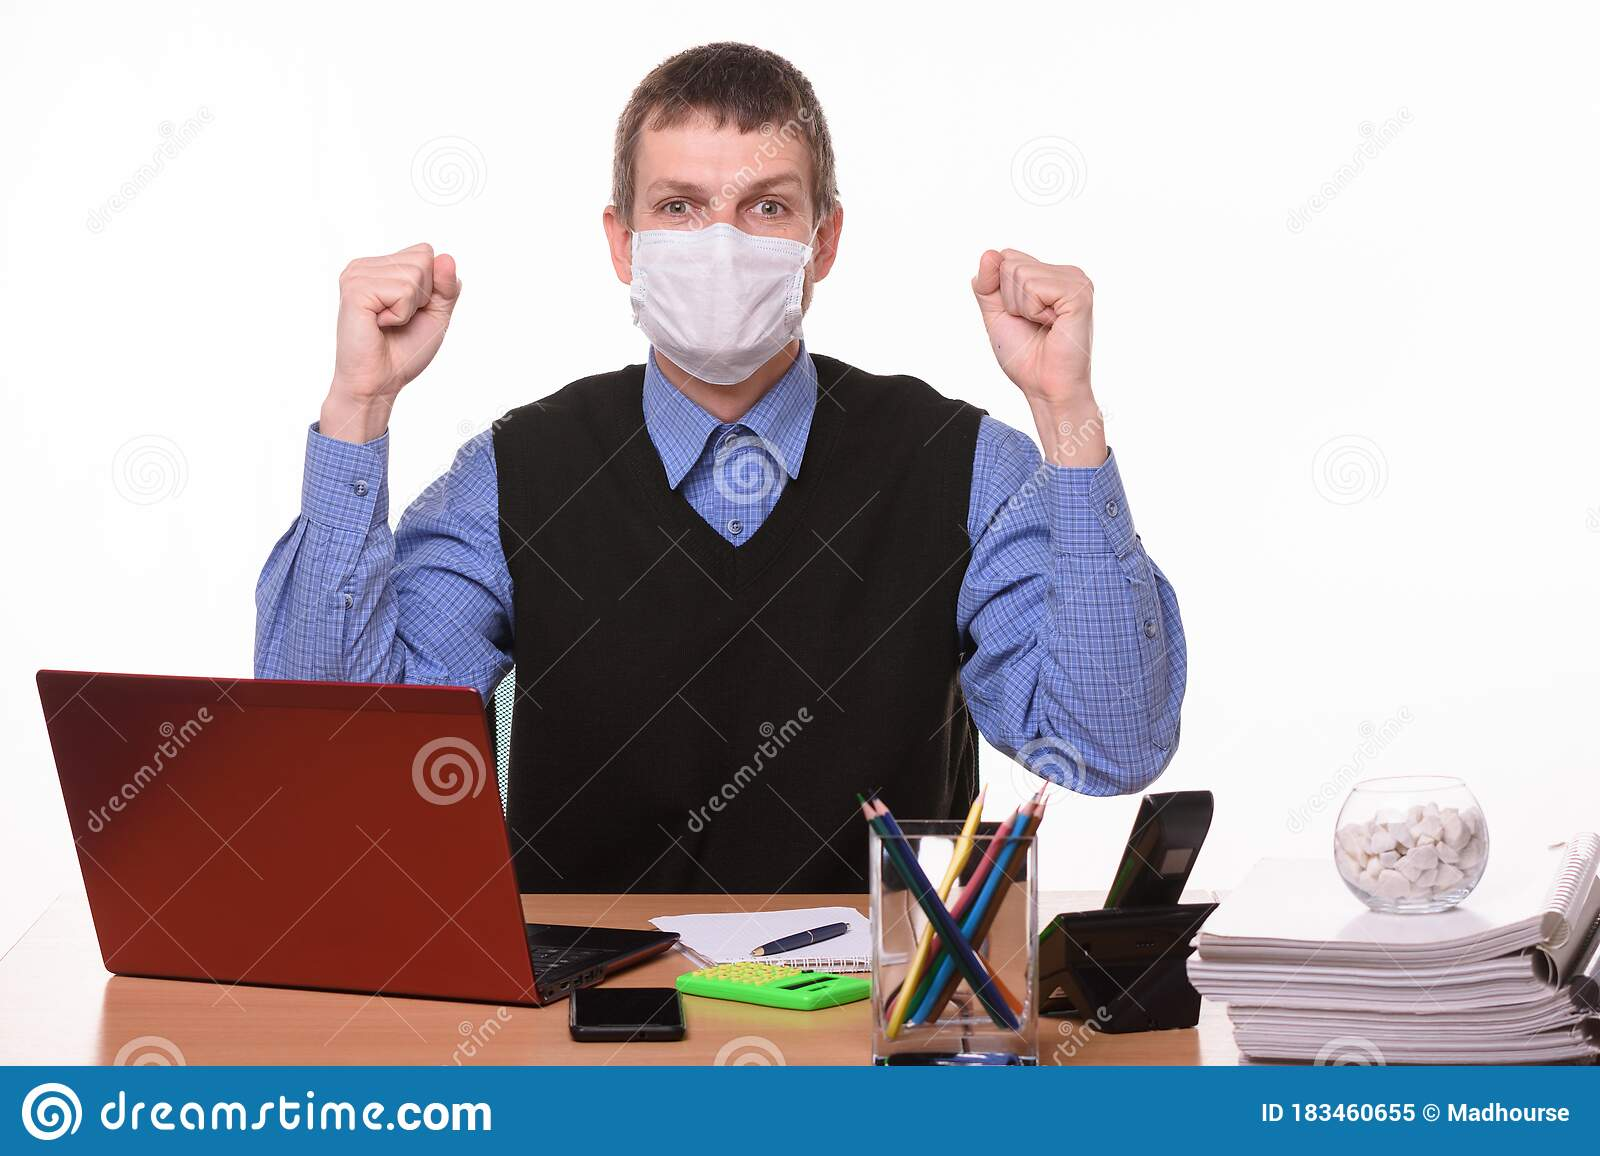 Office Specialist In Medical Mask Joyfully Celebrates Success Stock Image Image Of Background Pandemic 183460655